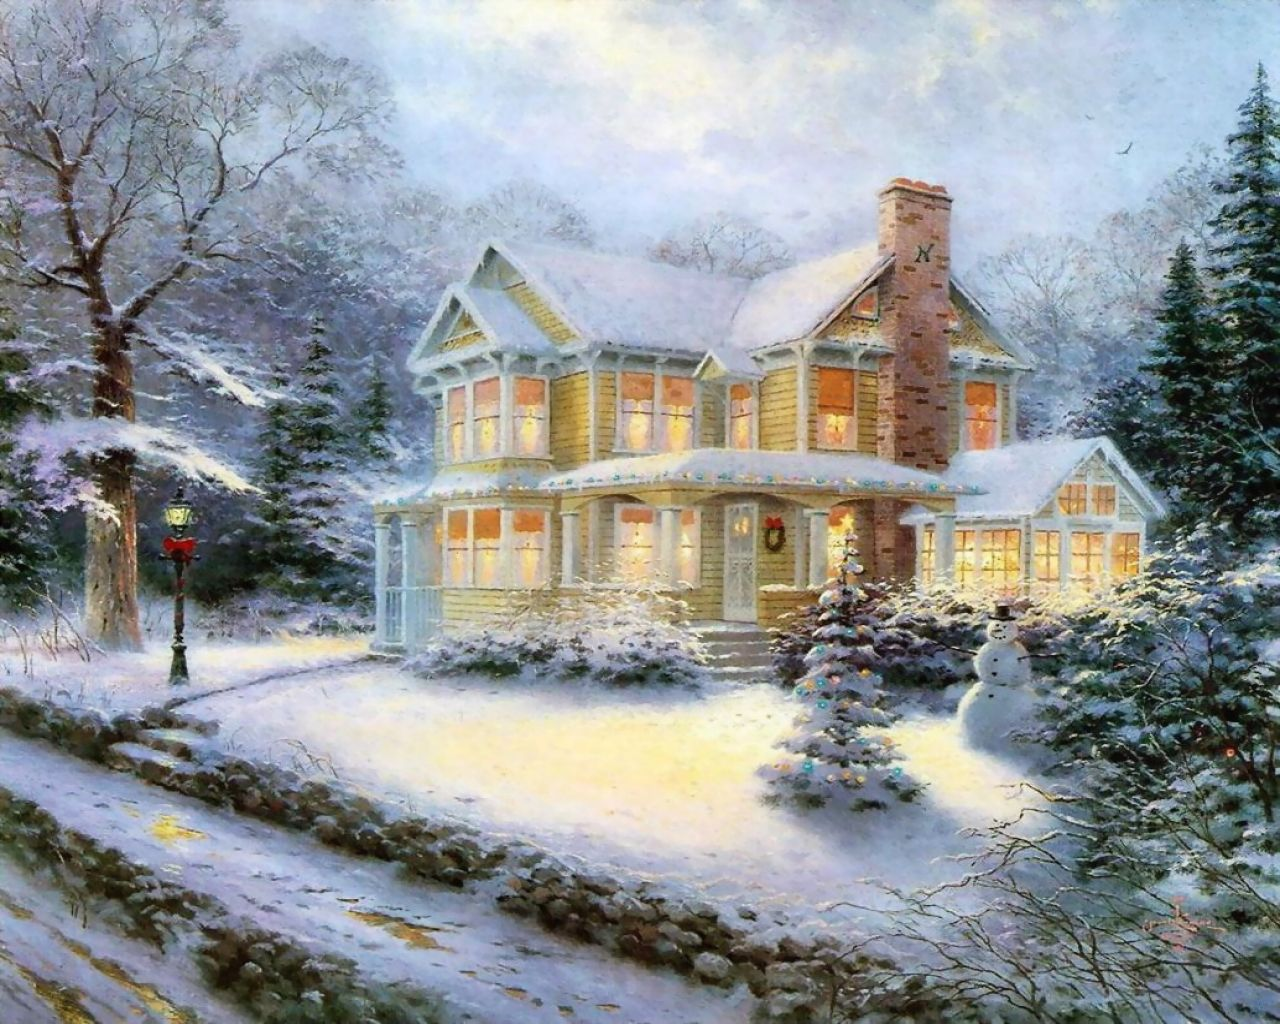 Thomas Kinkade Winter Wallpaper THOMAS KINKADE FOR TODAY mardecortsbaja com